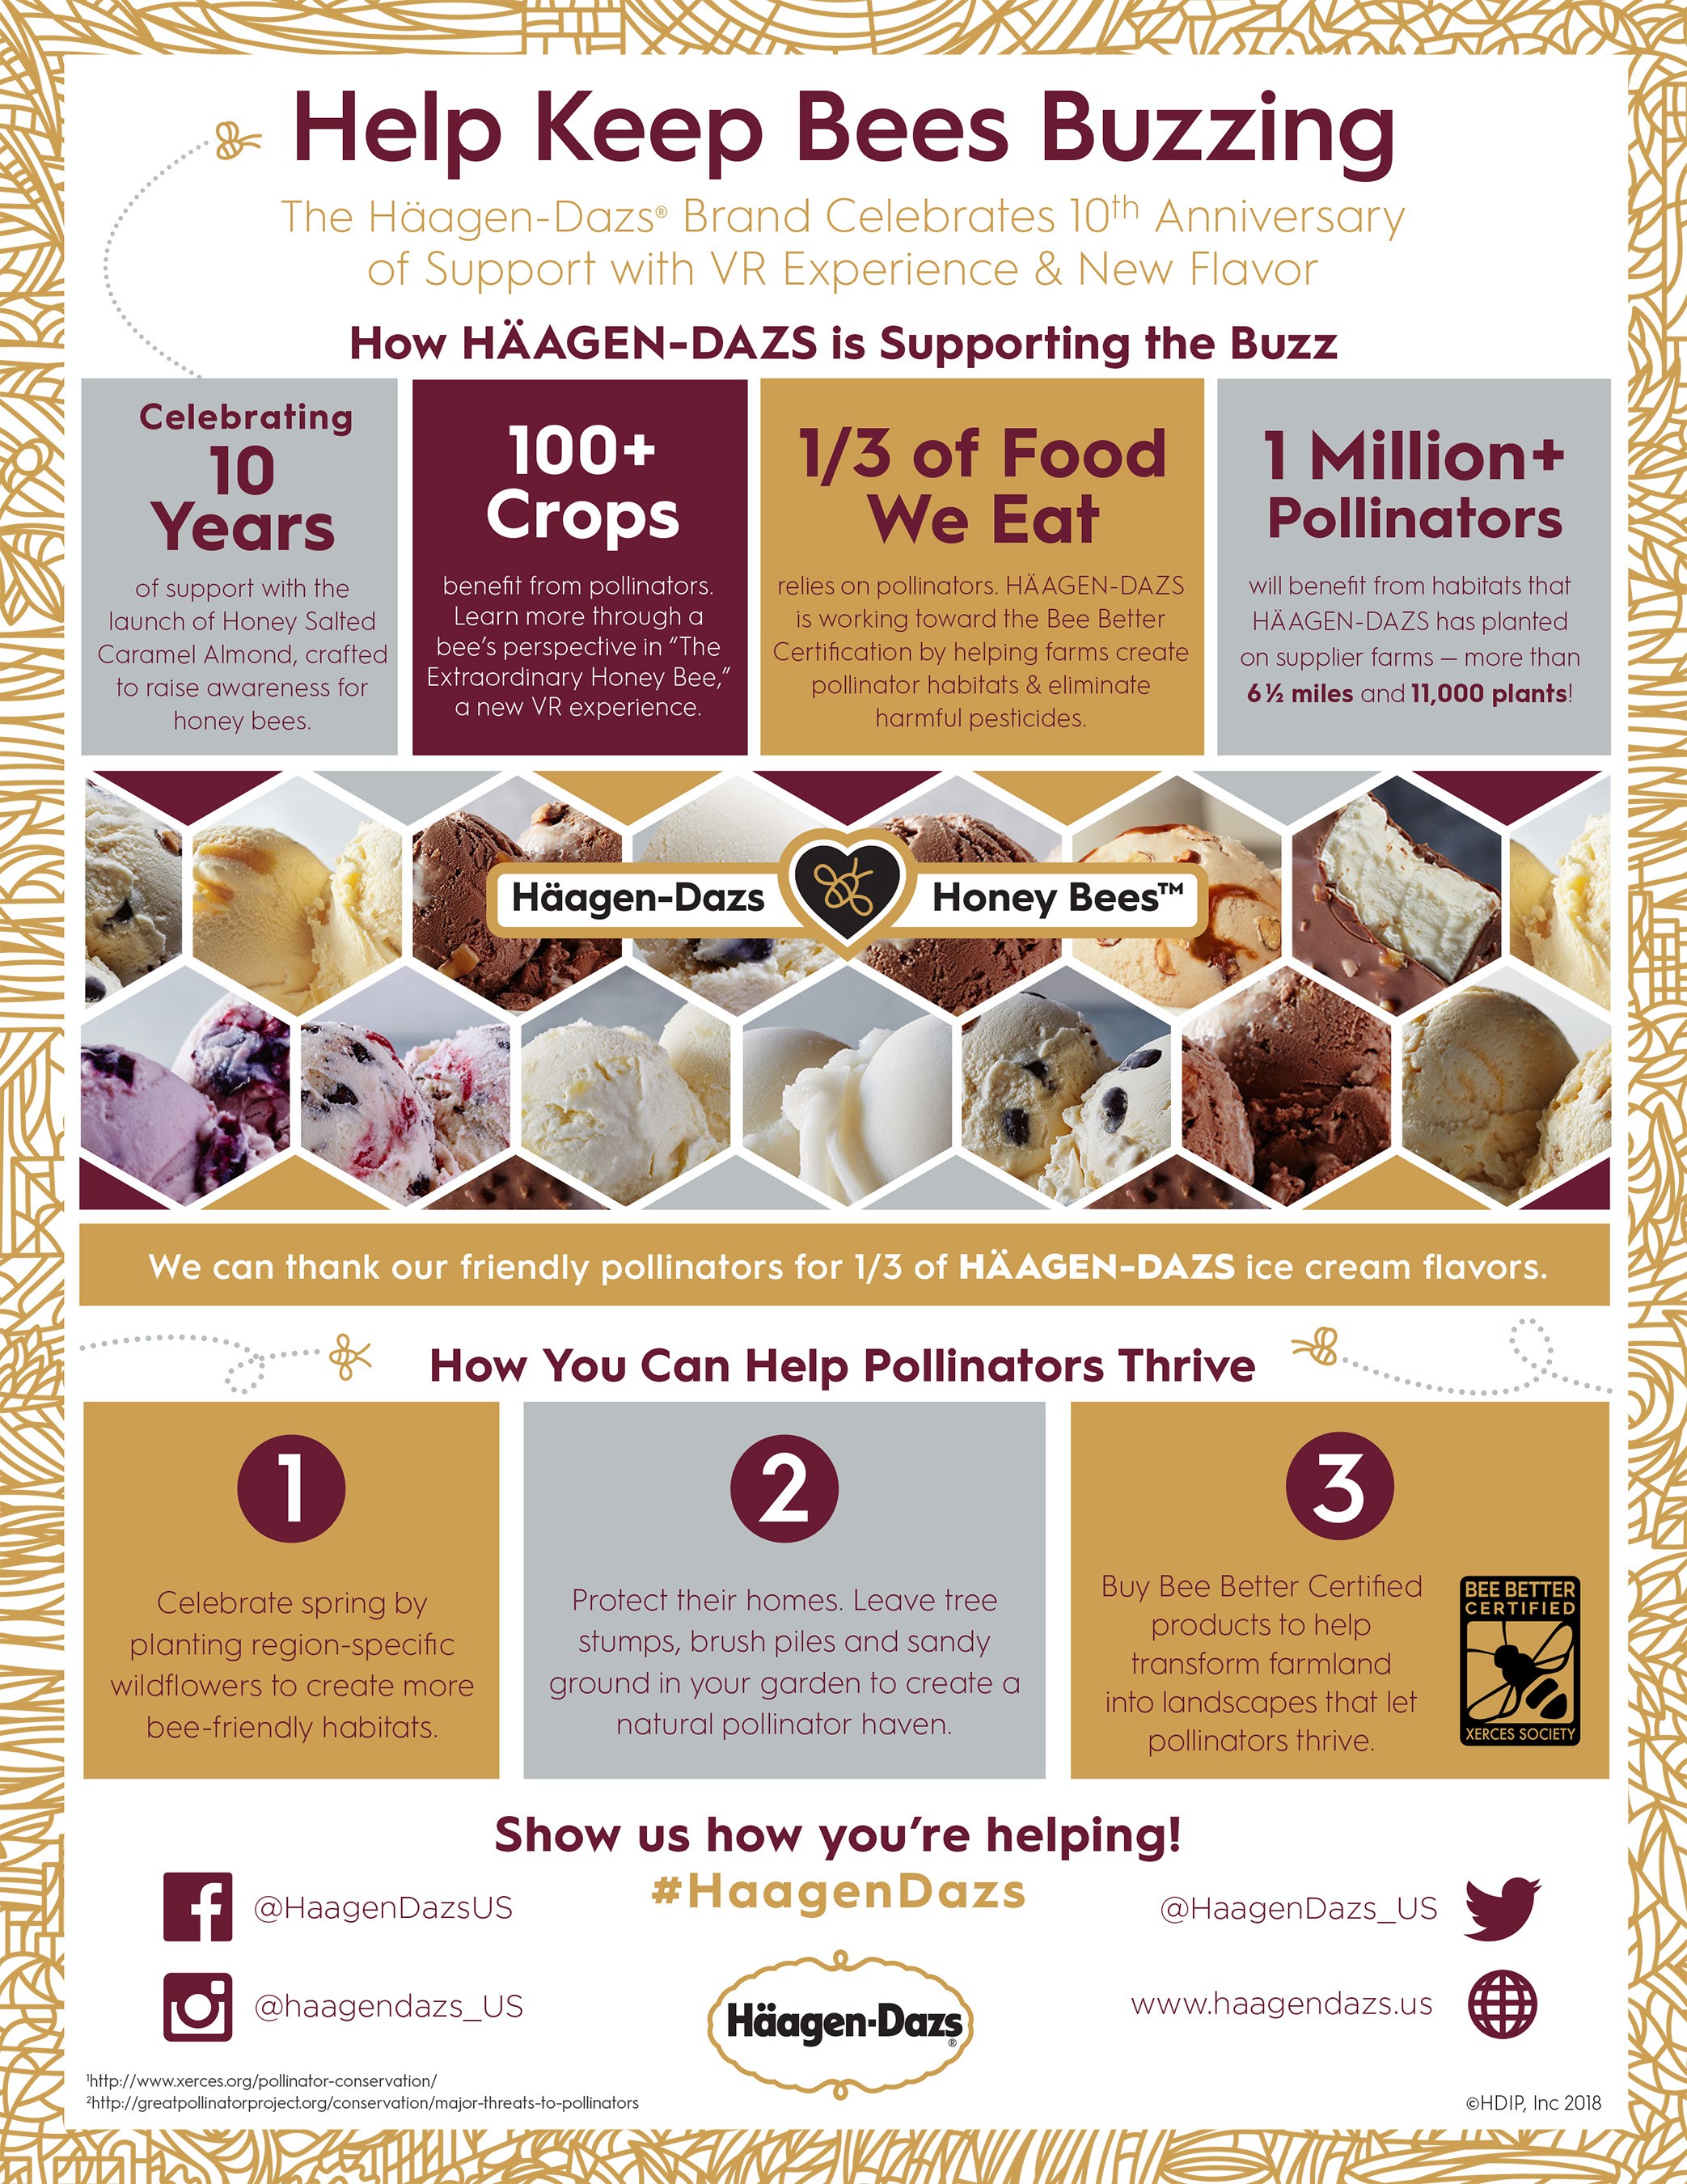 How You Can Help Keep Bees Buzzing